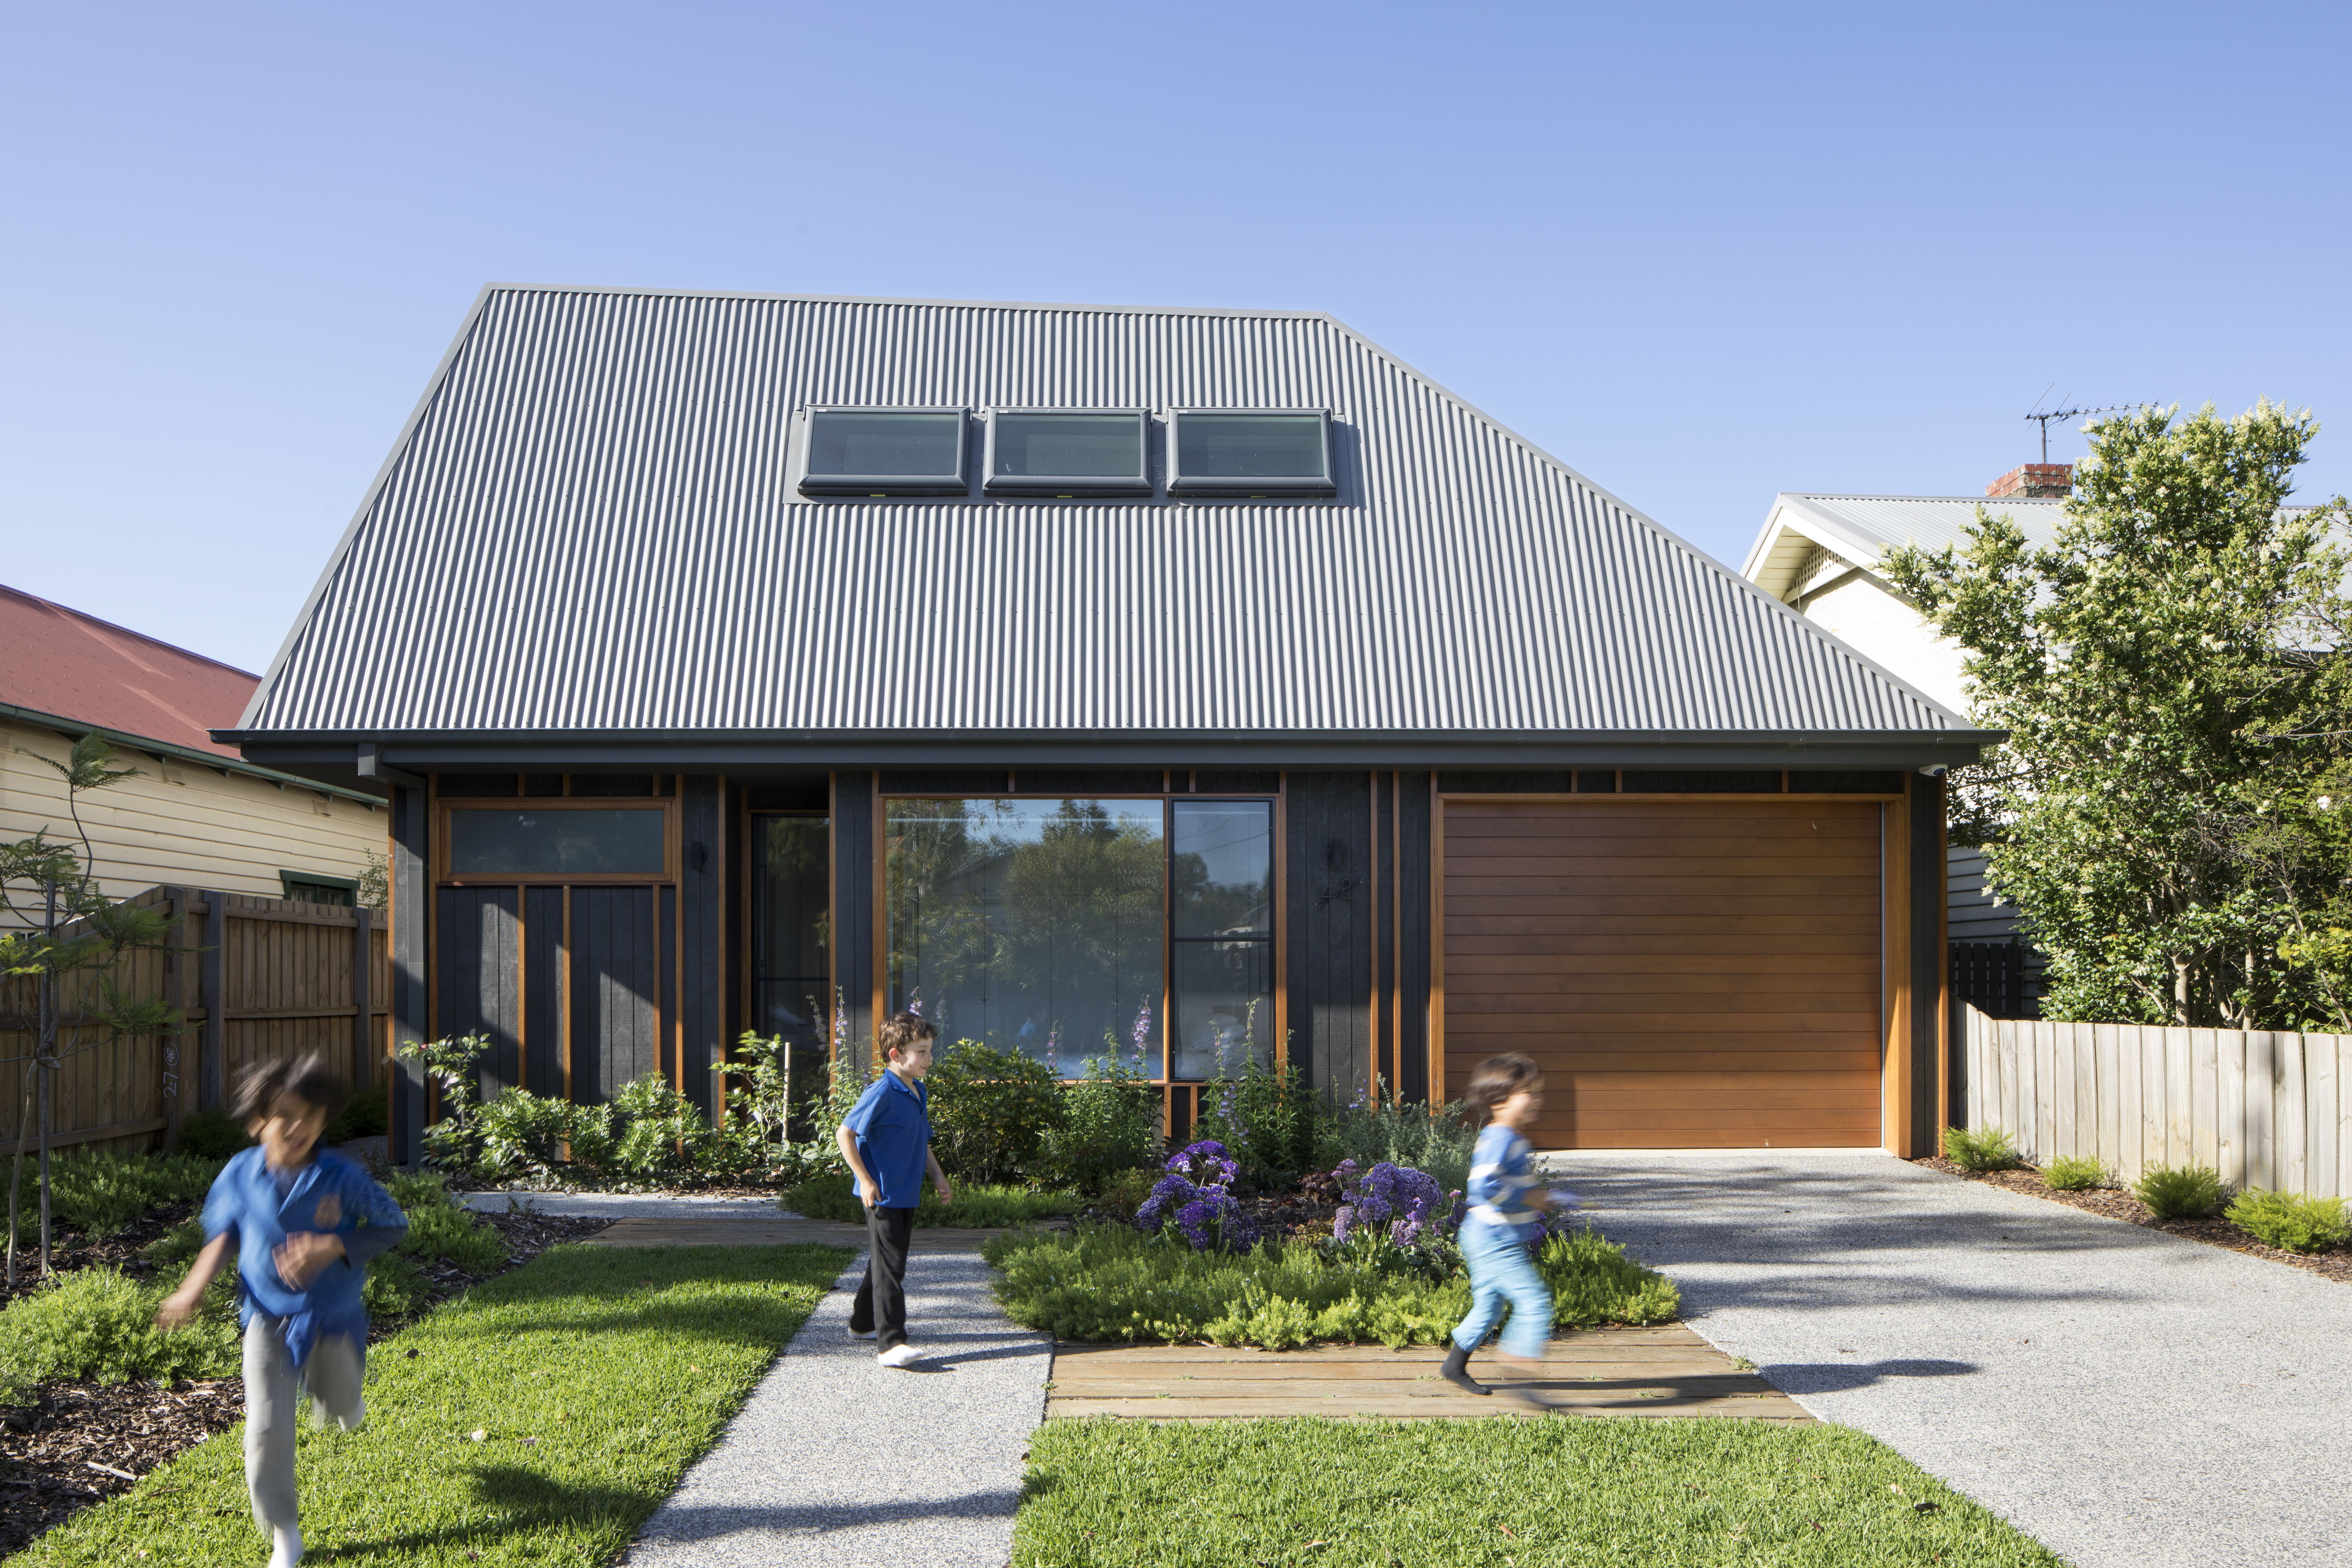 Photo 2 Of 10 In A Family Home In Australia Features A Playful Architecture Thornbury House Roof